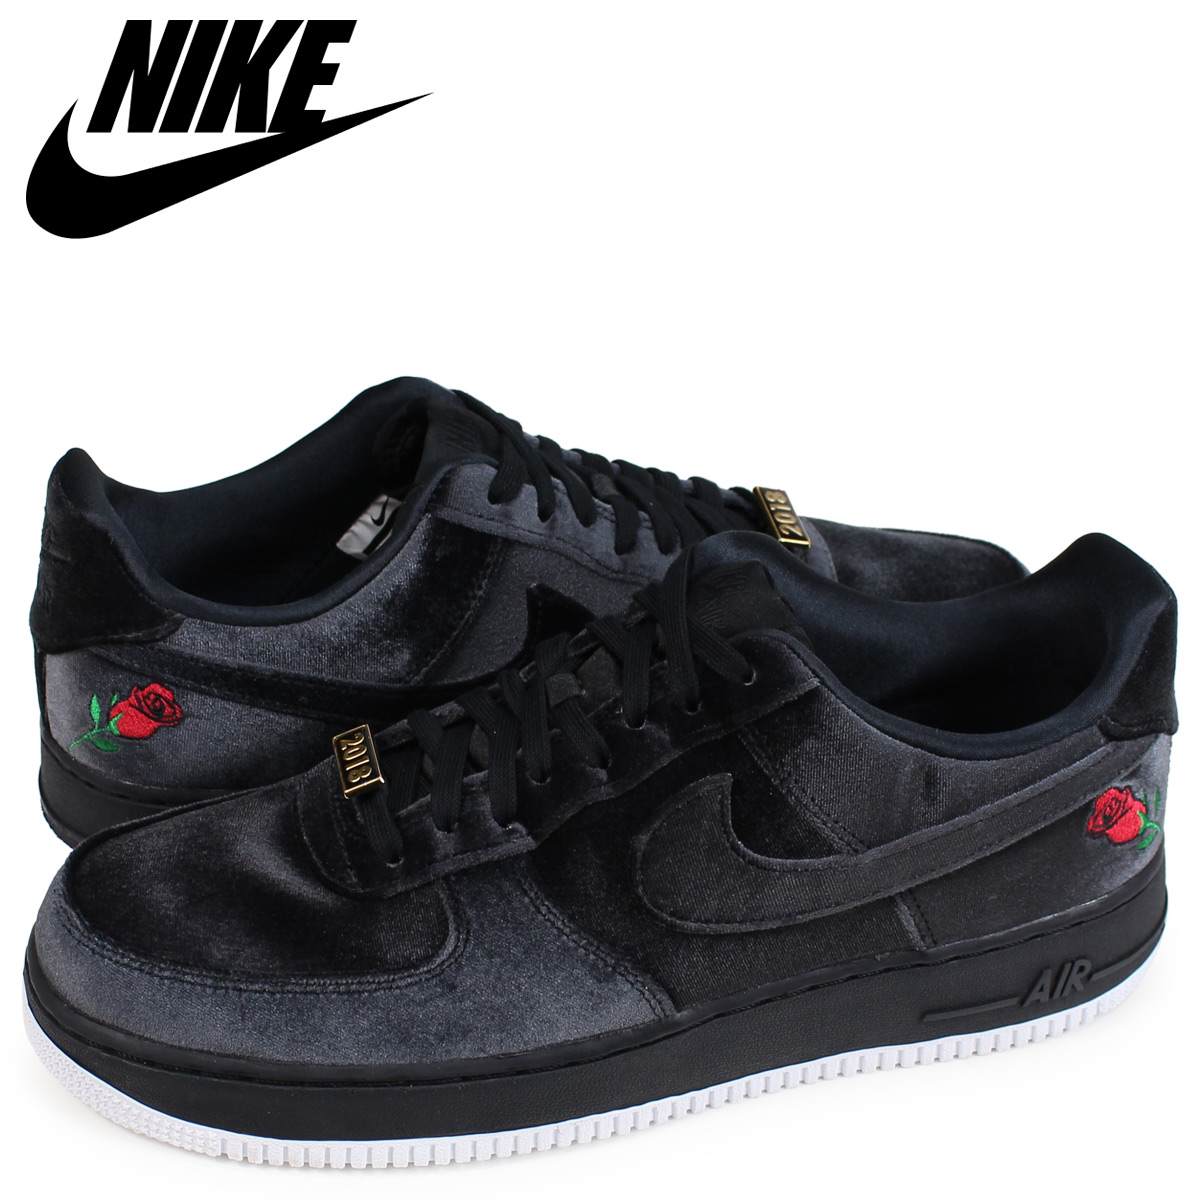 NIKE Nike air force 1 sneakers men AIR FORCE 1 07 QS VELVET black black AH8462 003